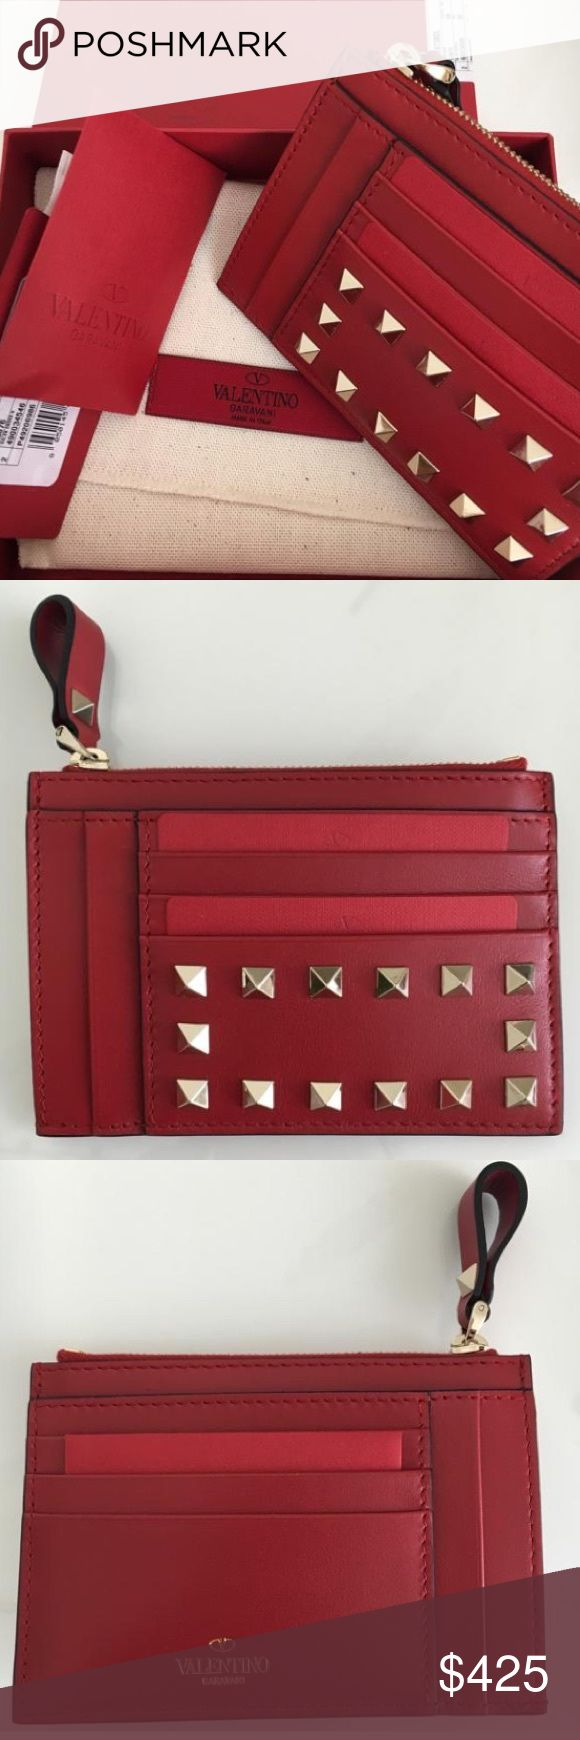 Valentino Rockstud Coin Pouch Valentino card holder / wallet. Brand new with dust pouch, tags, extra studs and box. Fits 10 cards, 2 slip pockets and 1 zip pouch. Absolutely stunning!! No Trade!. Cheaper through ️️ Valentino Bags Wallets